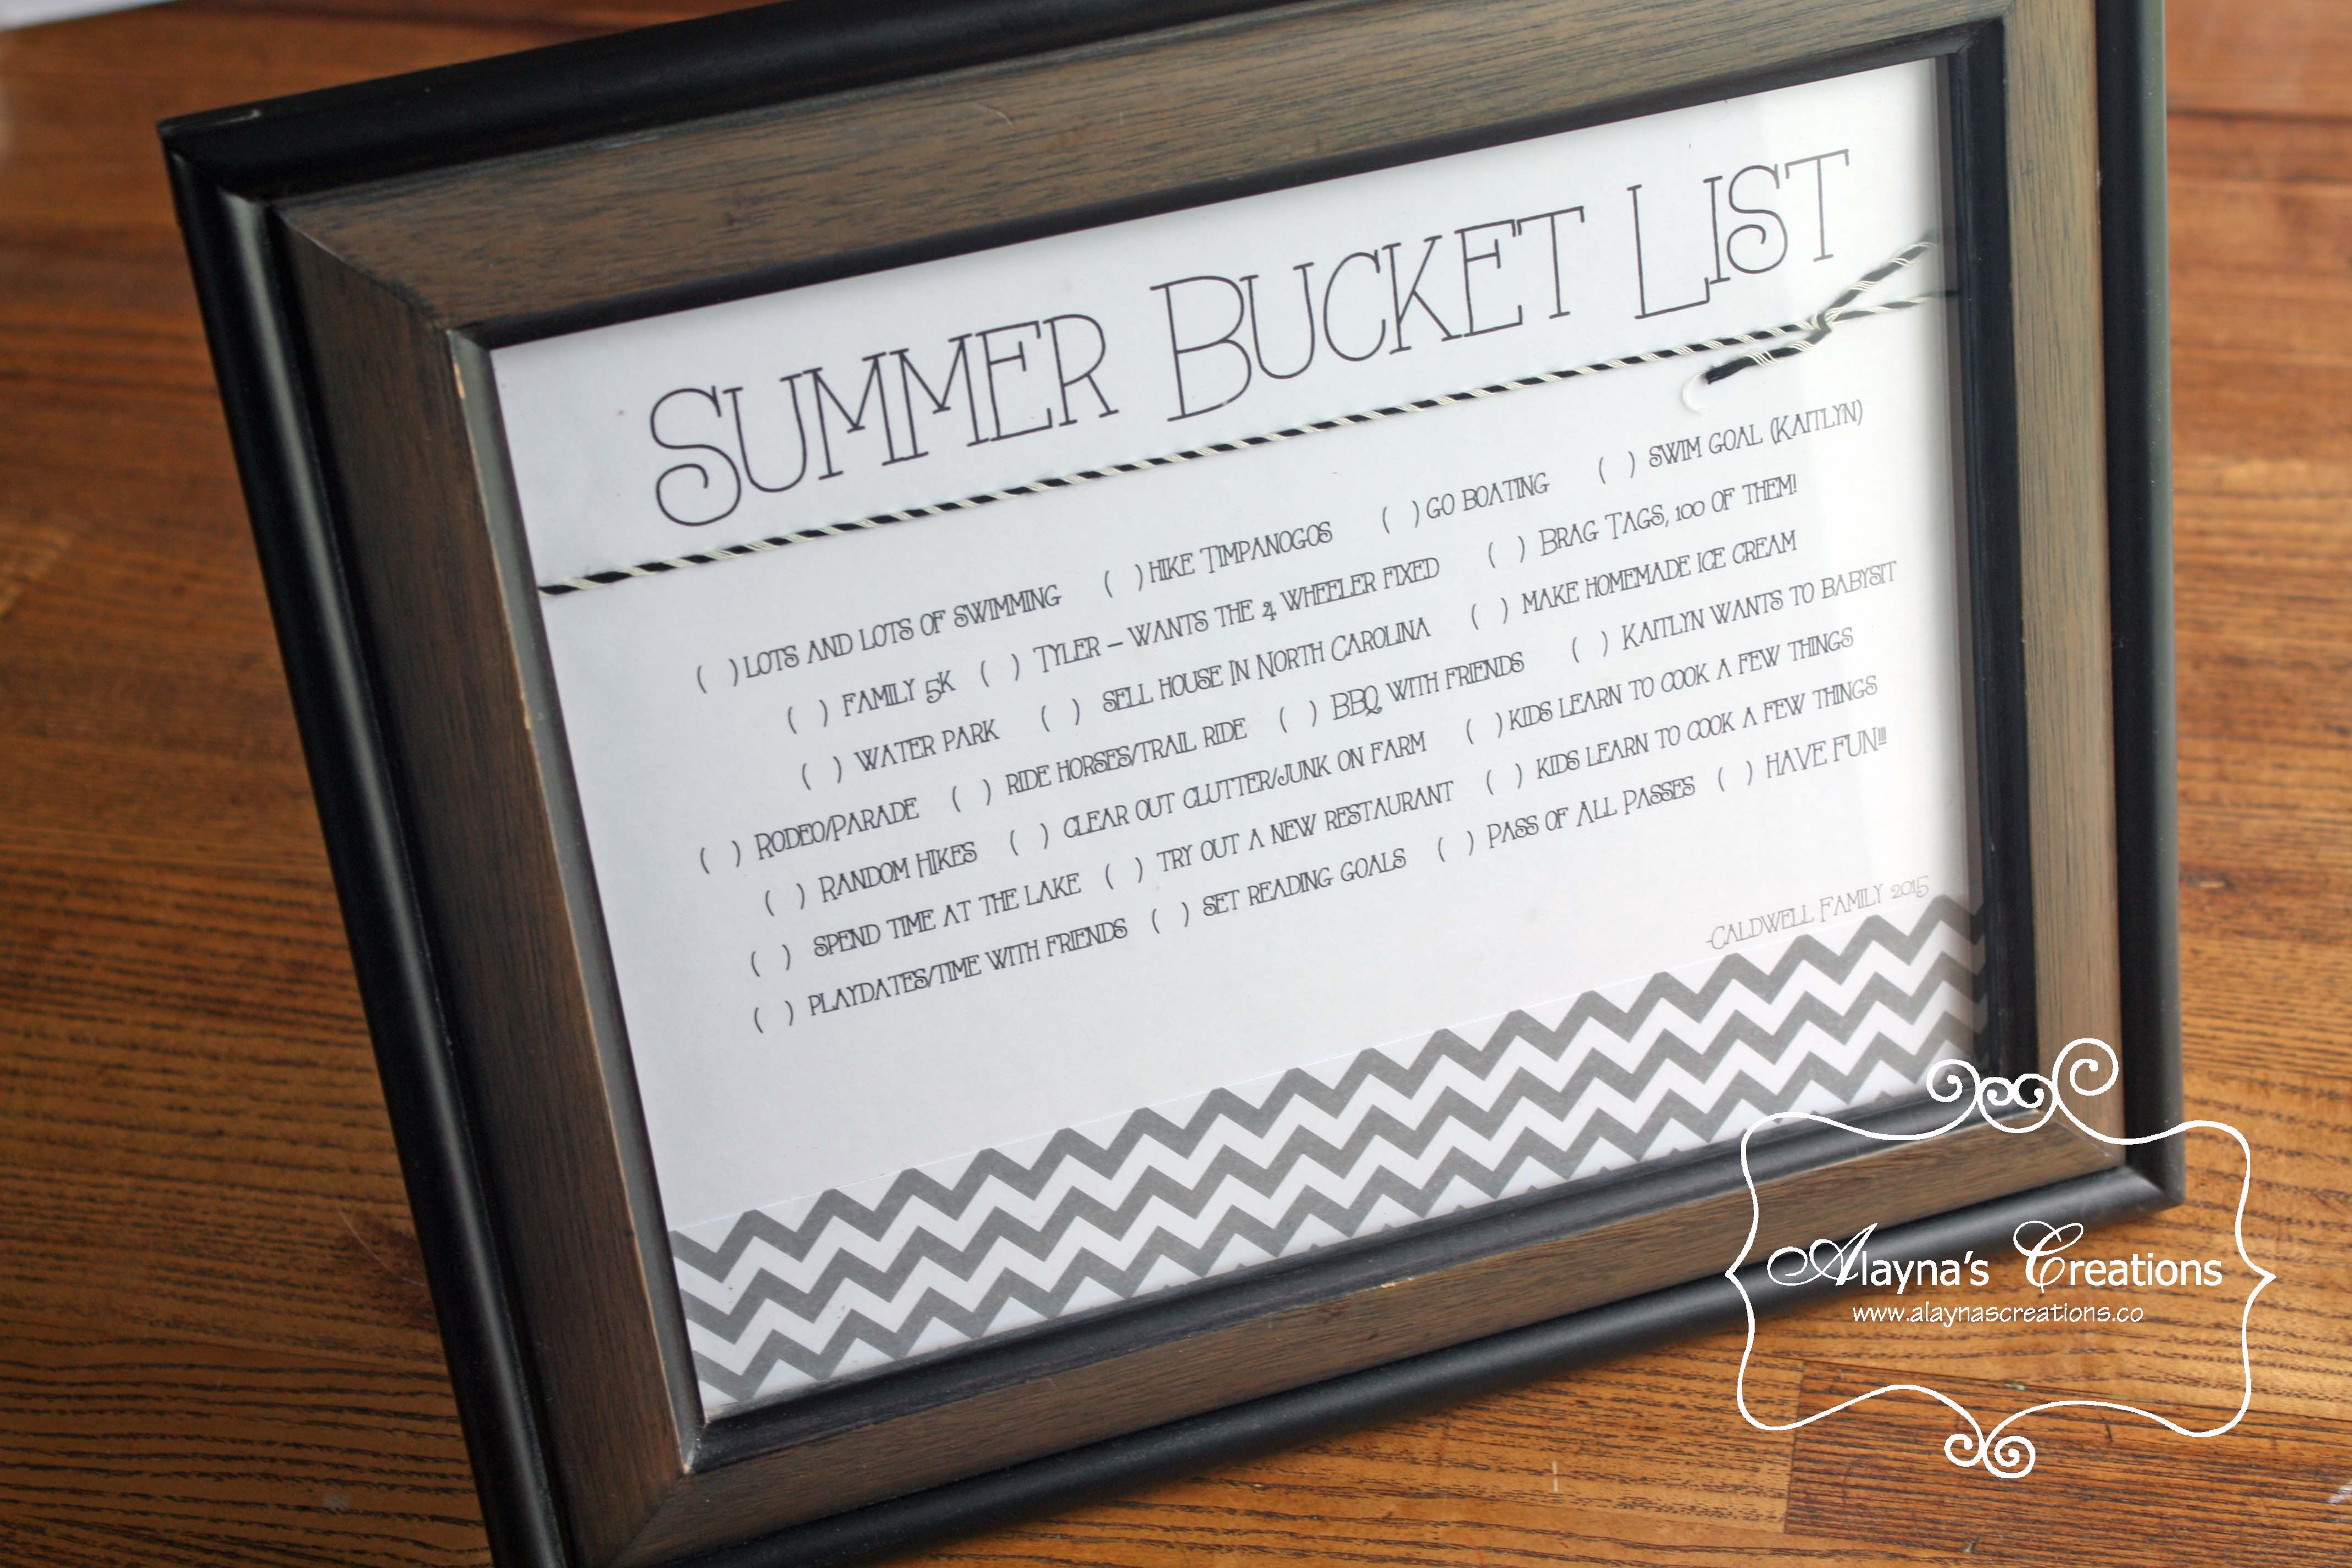 Own Bucket List For Summer